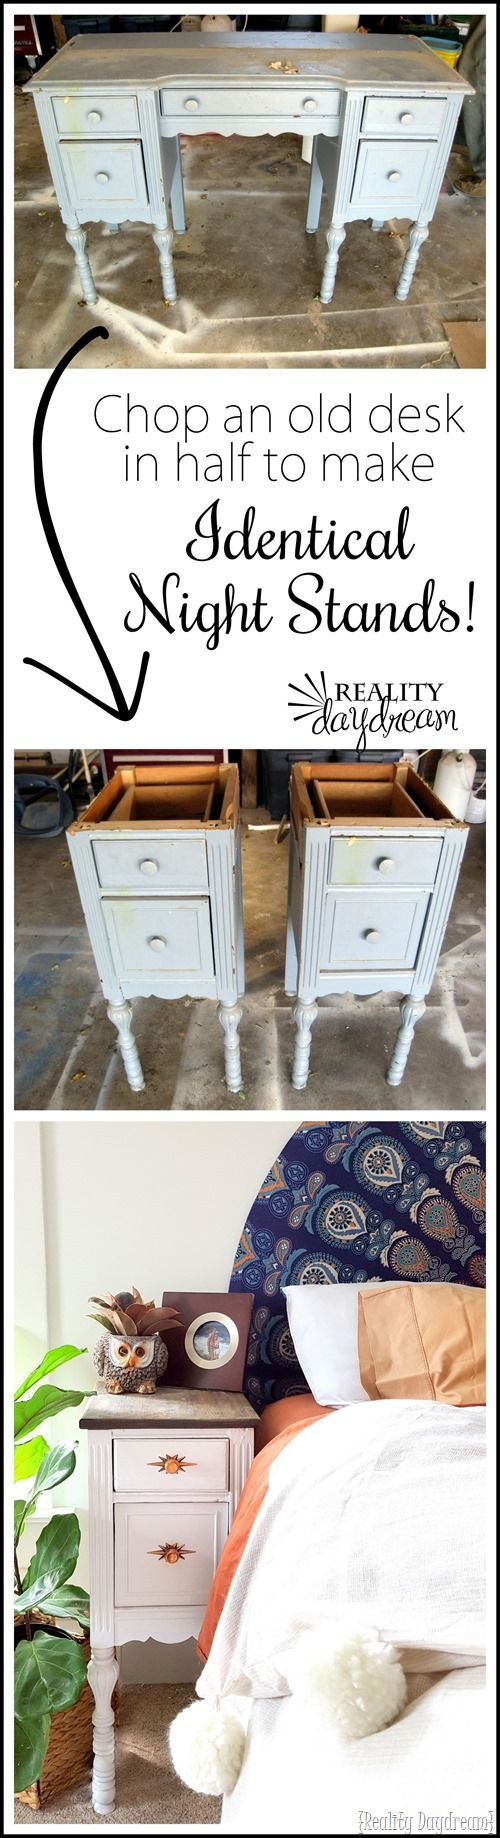 Take apart an old desk to make two unique and IDENTICAL night stands! Finally a bedside table that's the perfect height! {Reality Daydream}